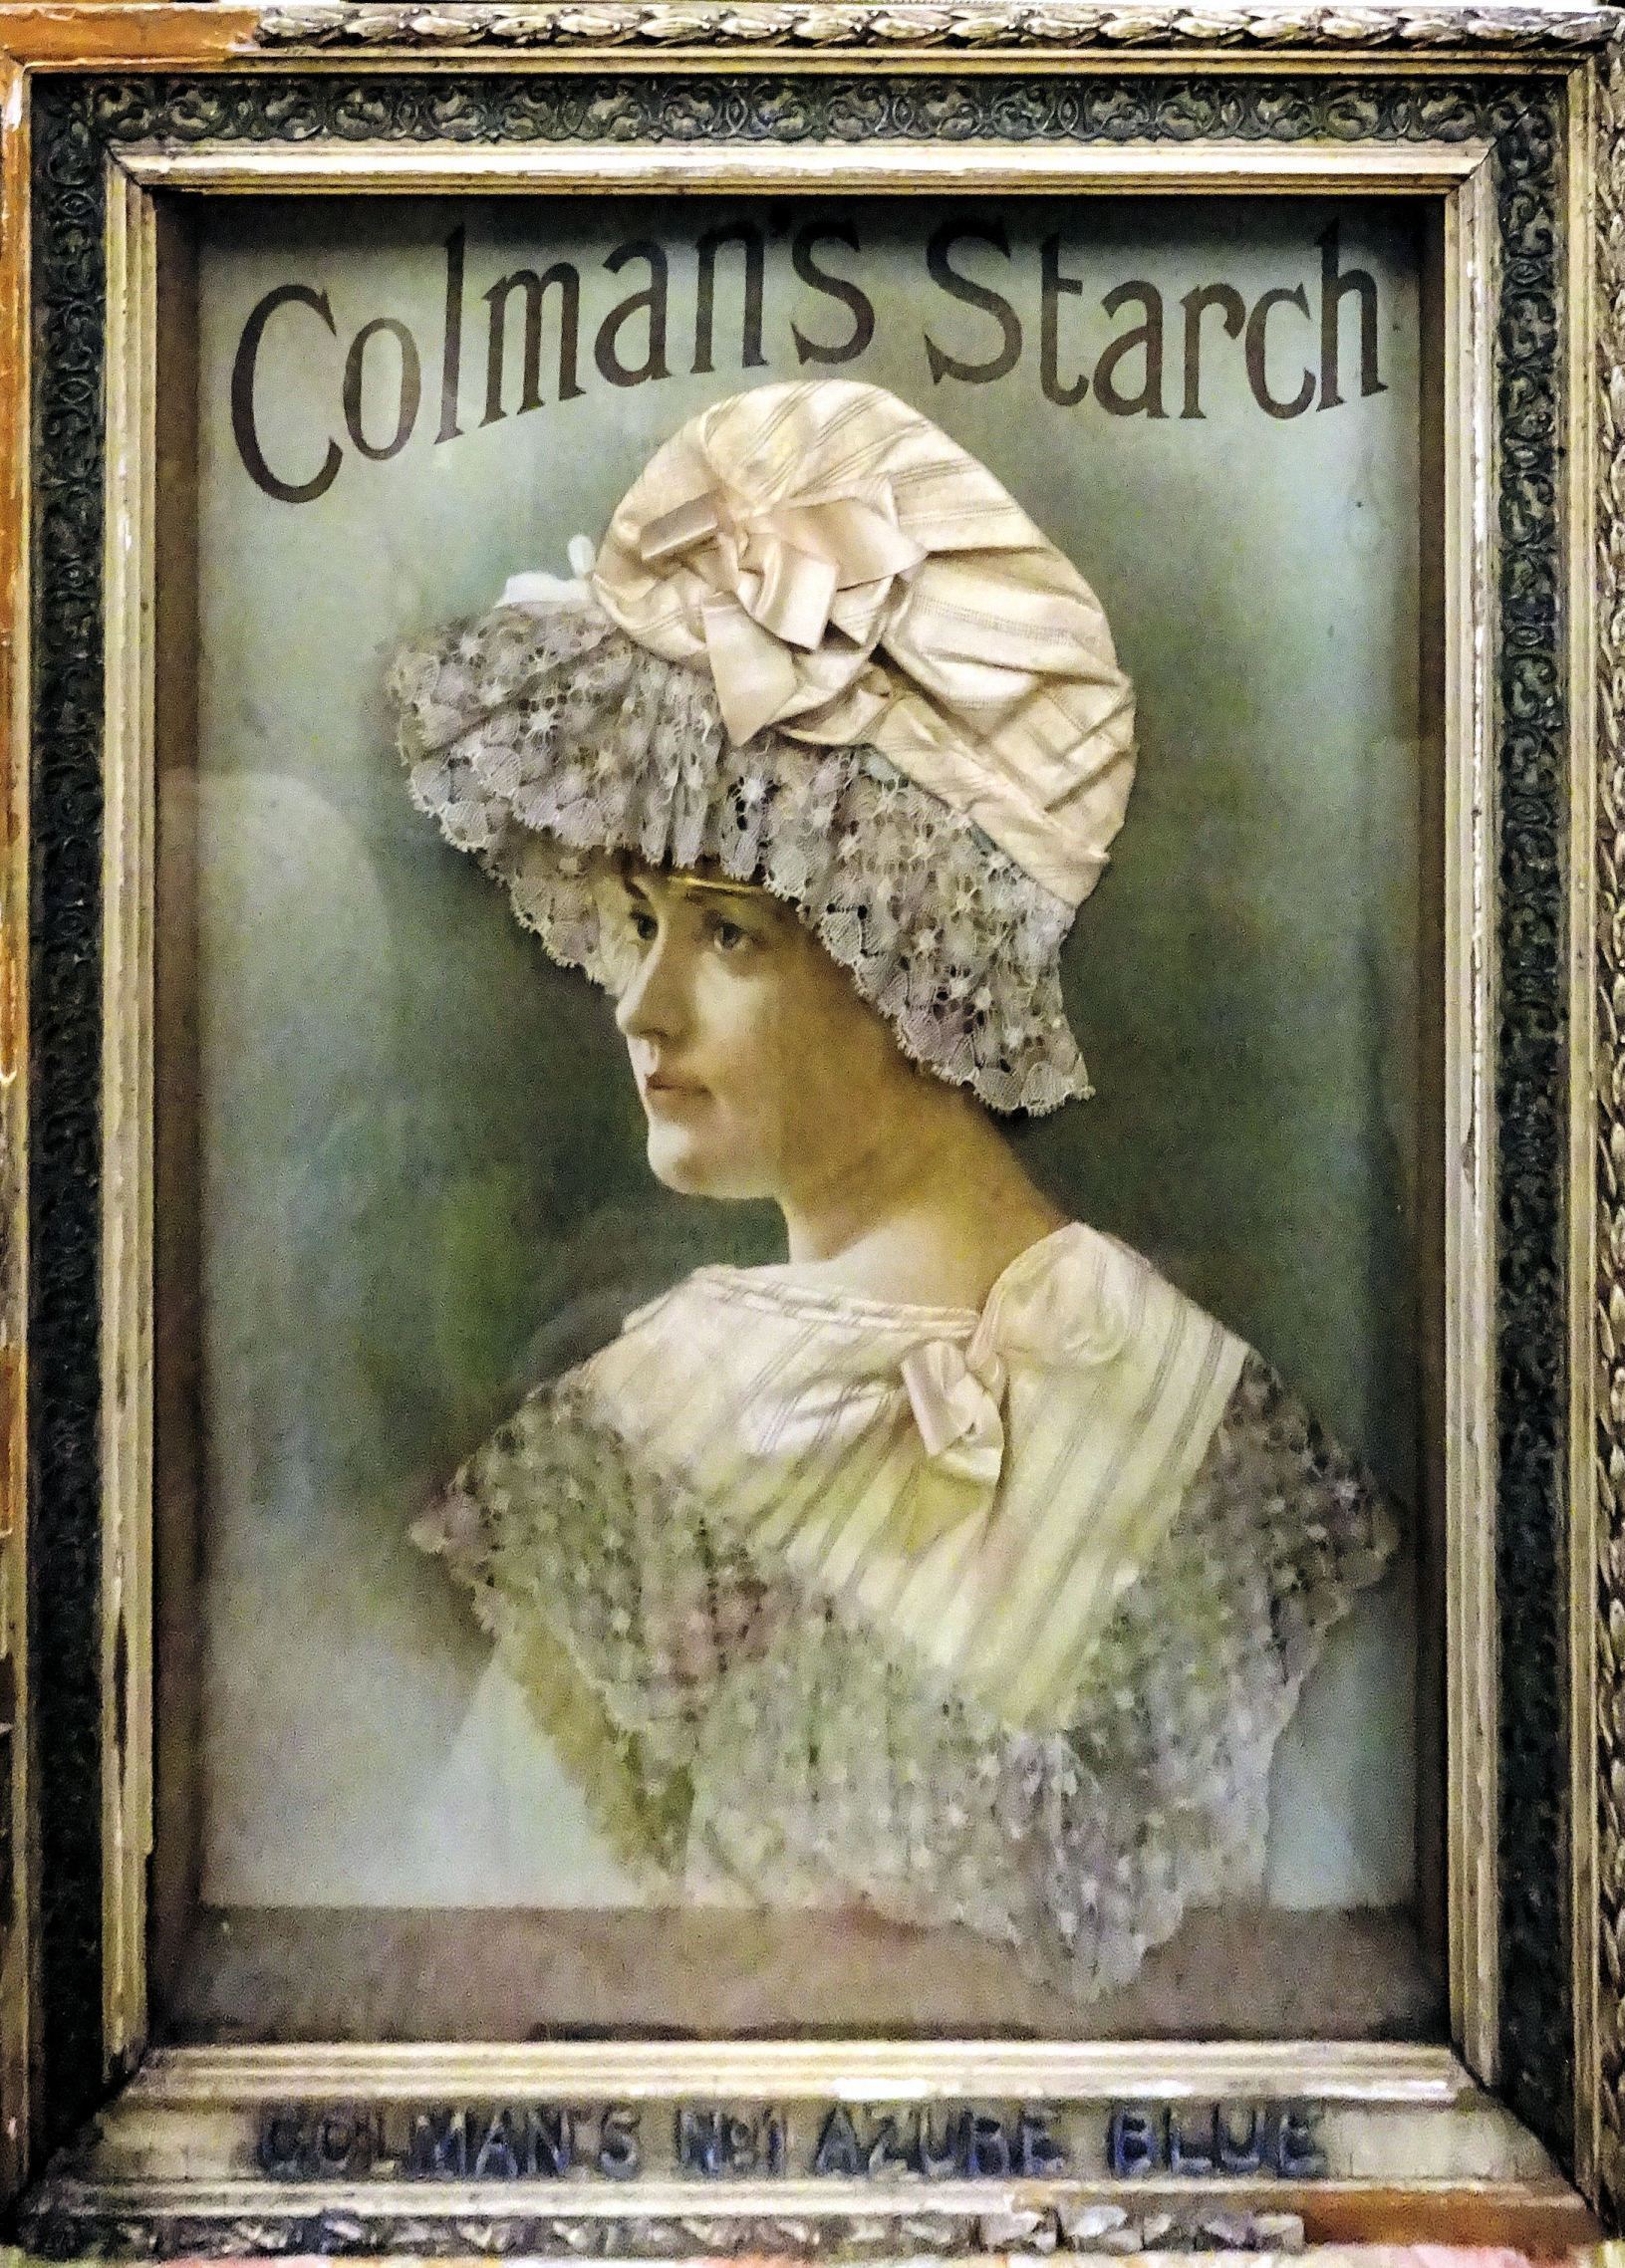 A three dimensional Panel advertising Colman's Starch